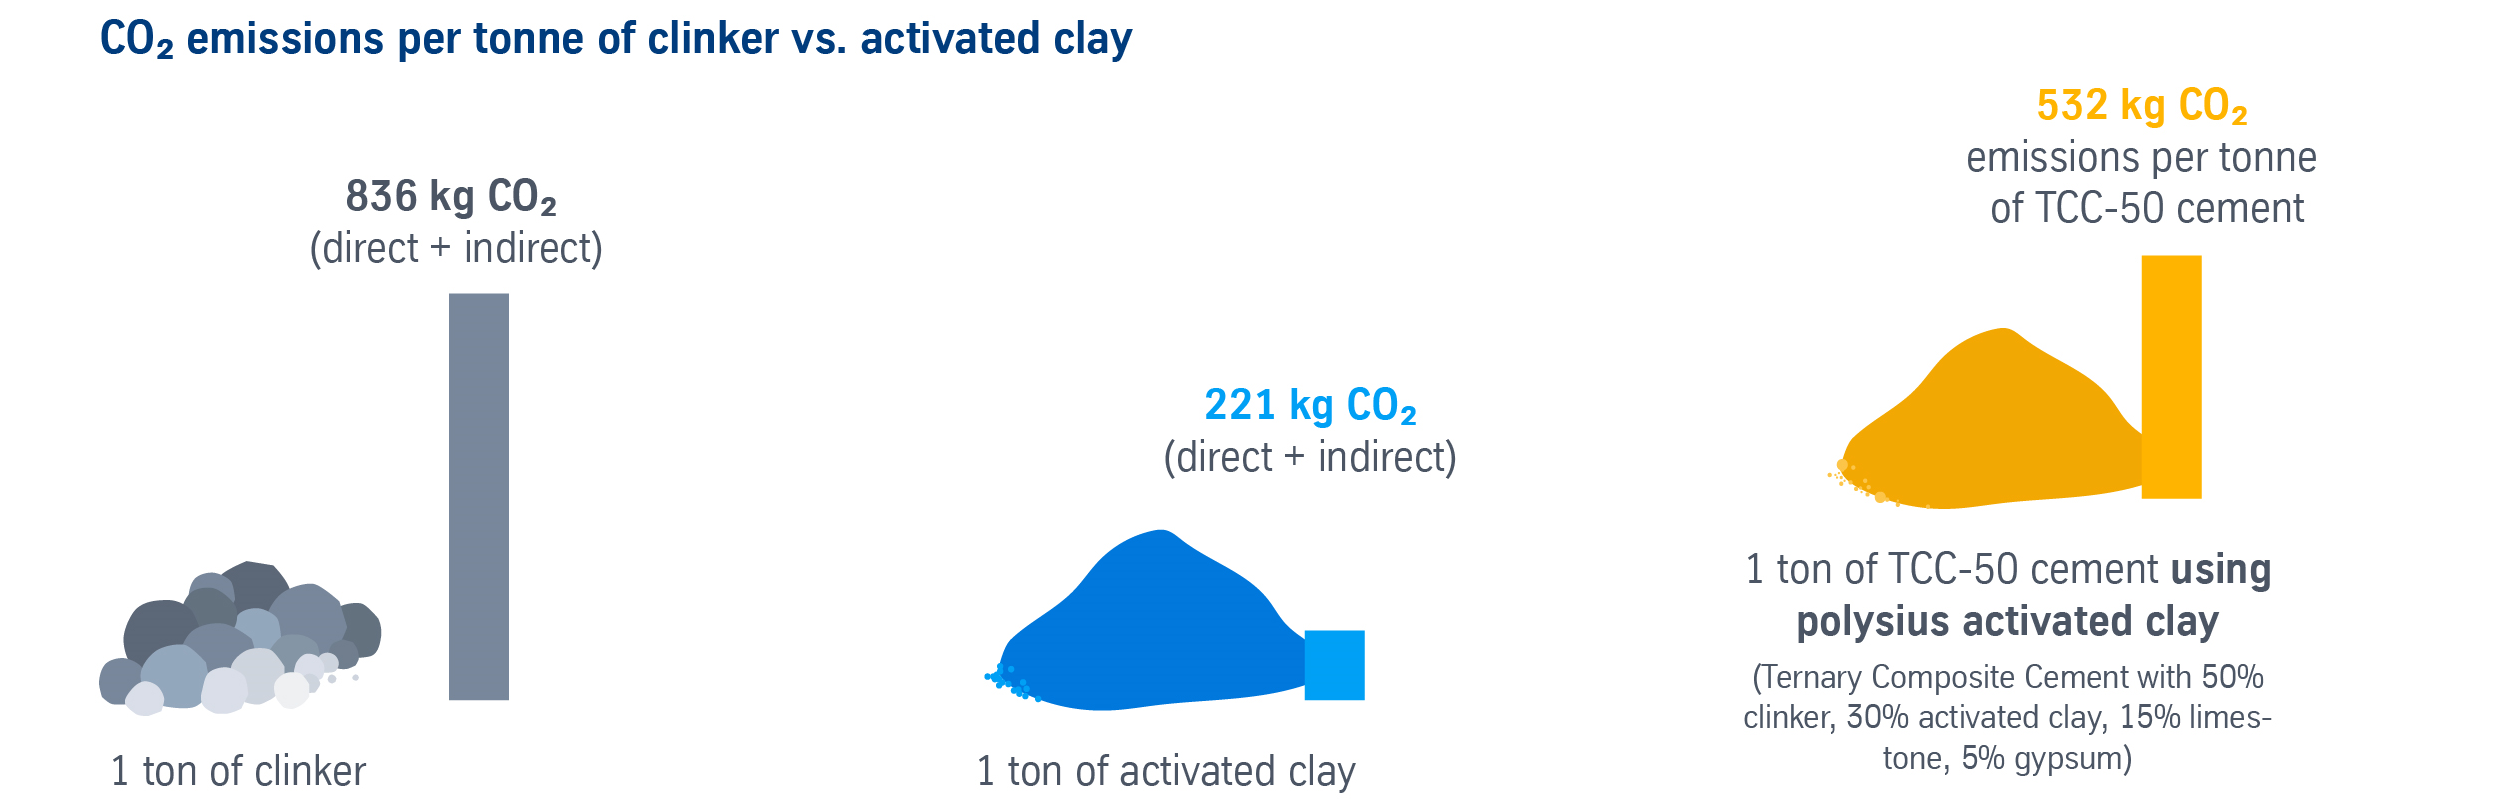 CO2 emissions of clinker vs. activated clay